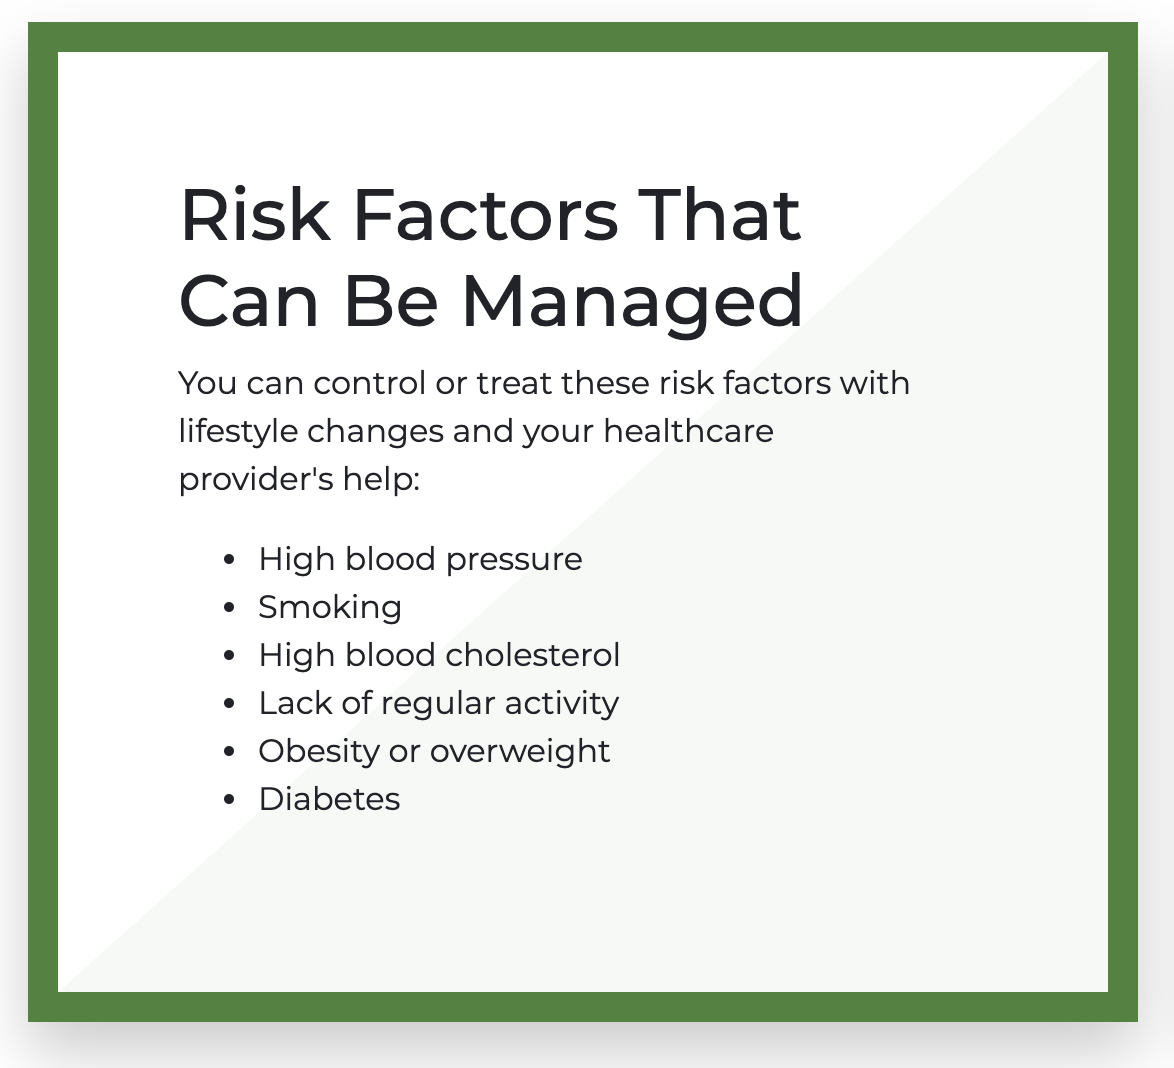 heart Risk Factors That Can Be Managed